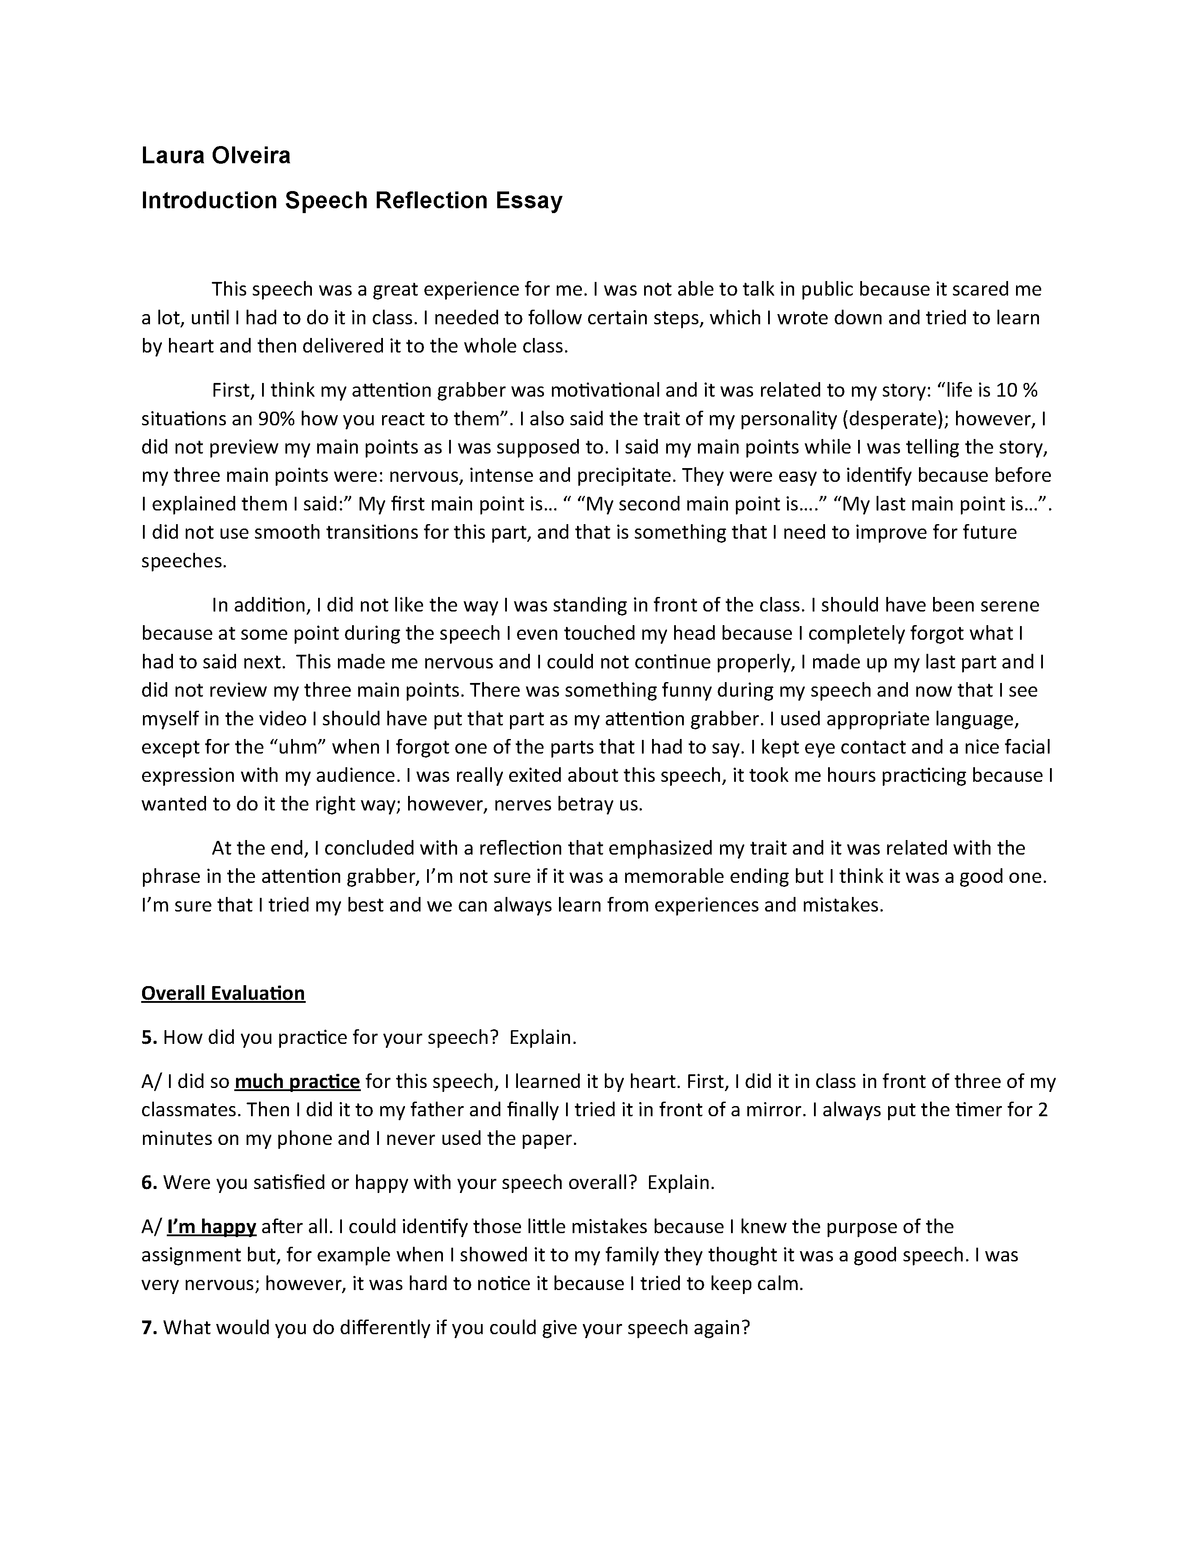 Reflection essay introduction